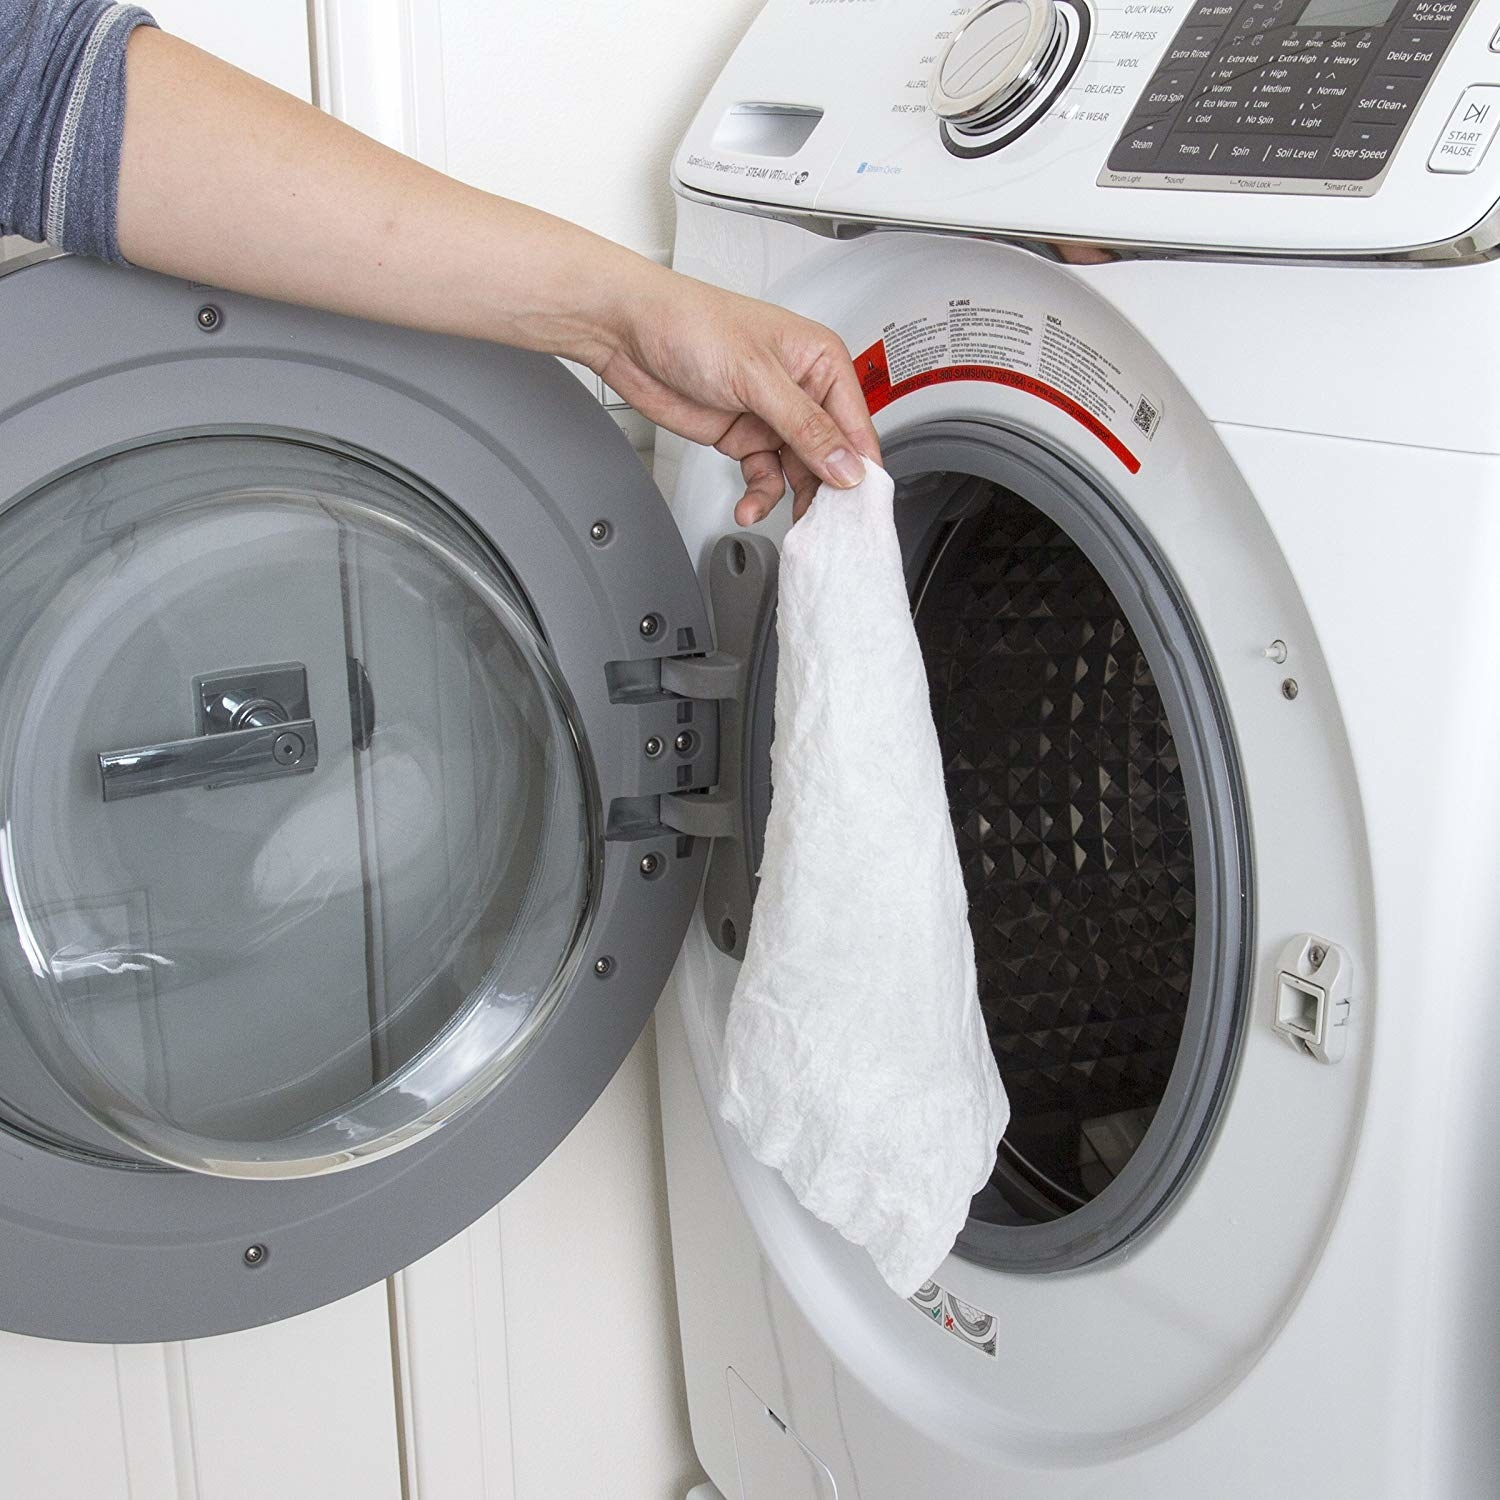 A person putting a piece of reusable paper towel into their washing machine